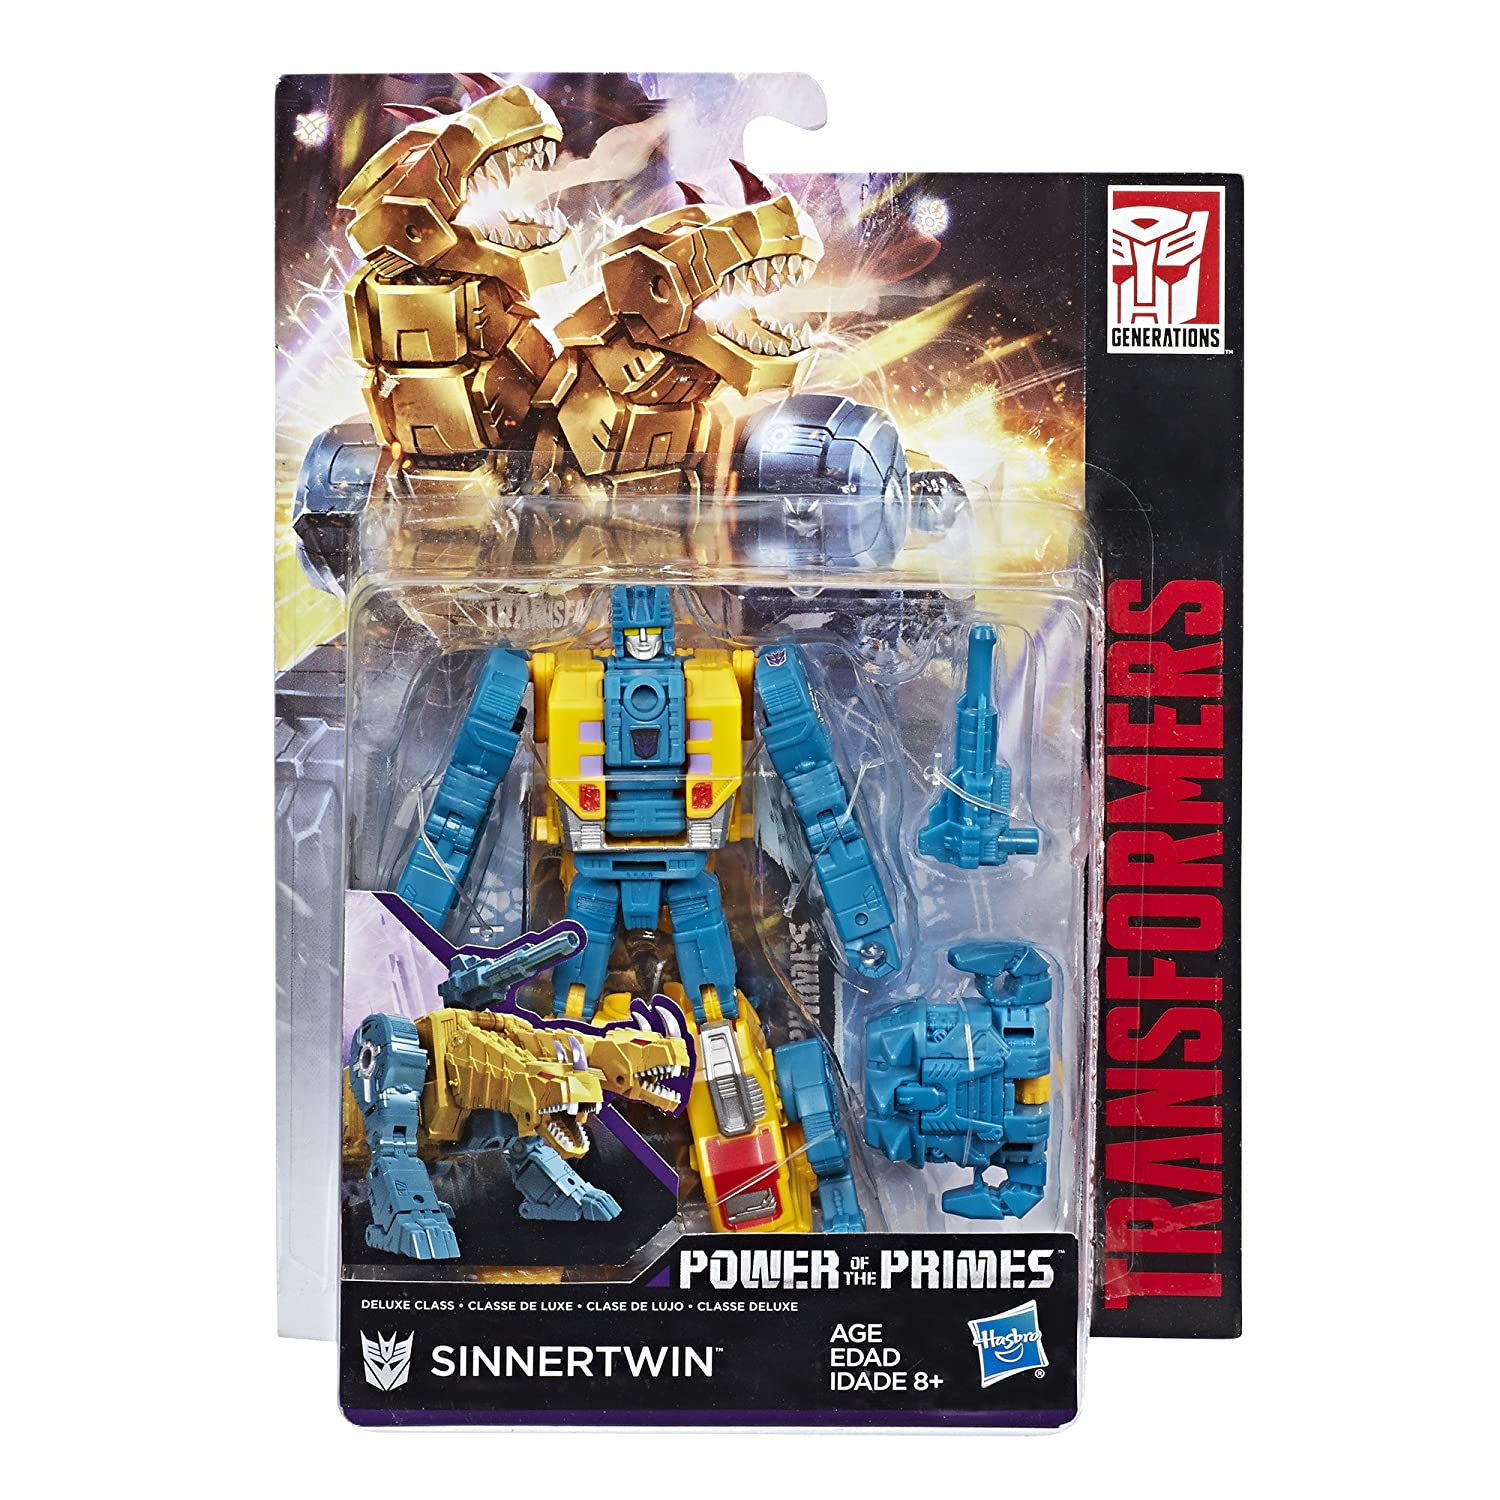 Transformers Generations Power of the Primes Deluxe Class Sinnertwin Hasbro E1133